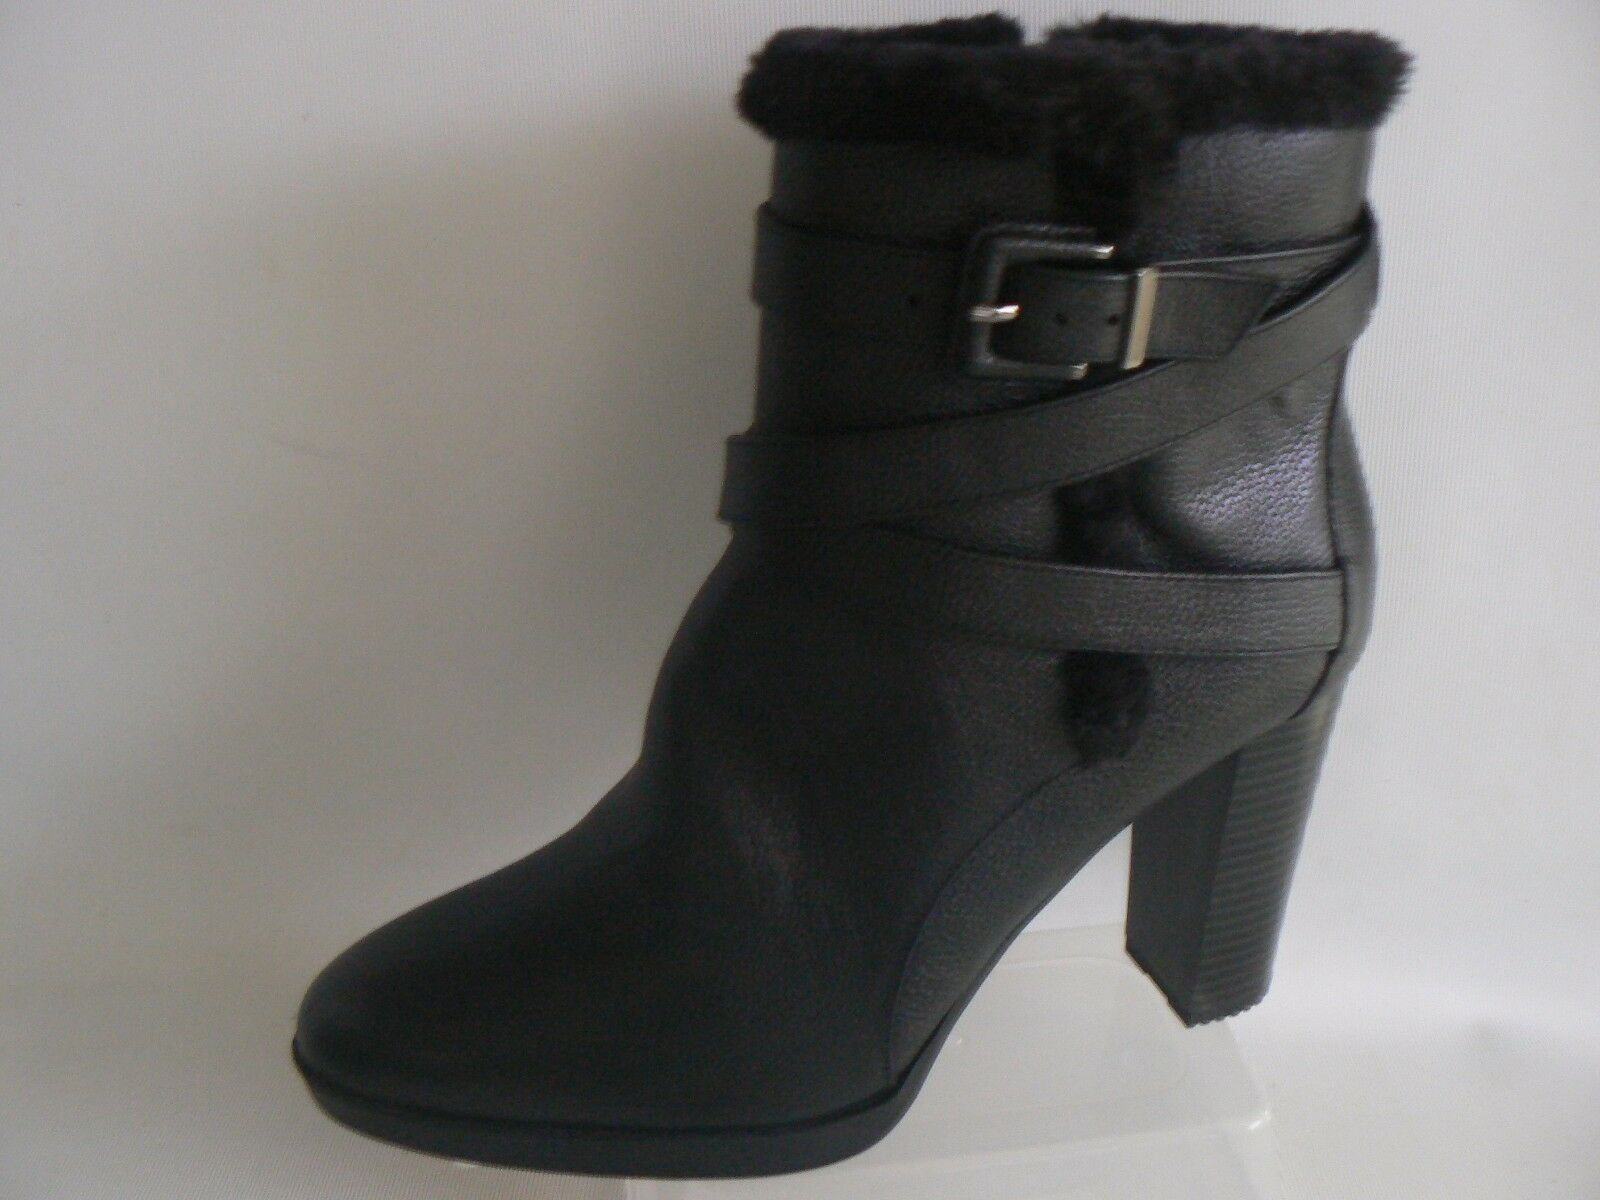 MARKS & SPENCER Black Leather Ankle Boots UK Size 8  Strapping Detail